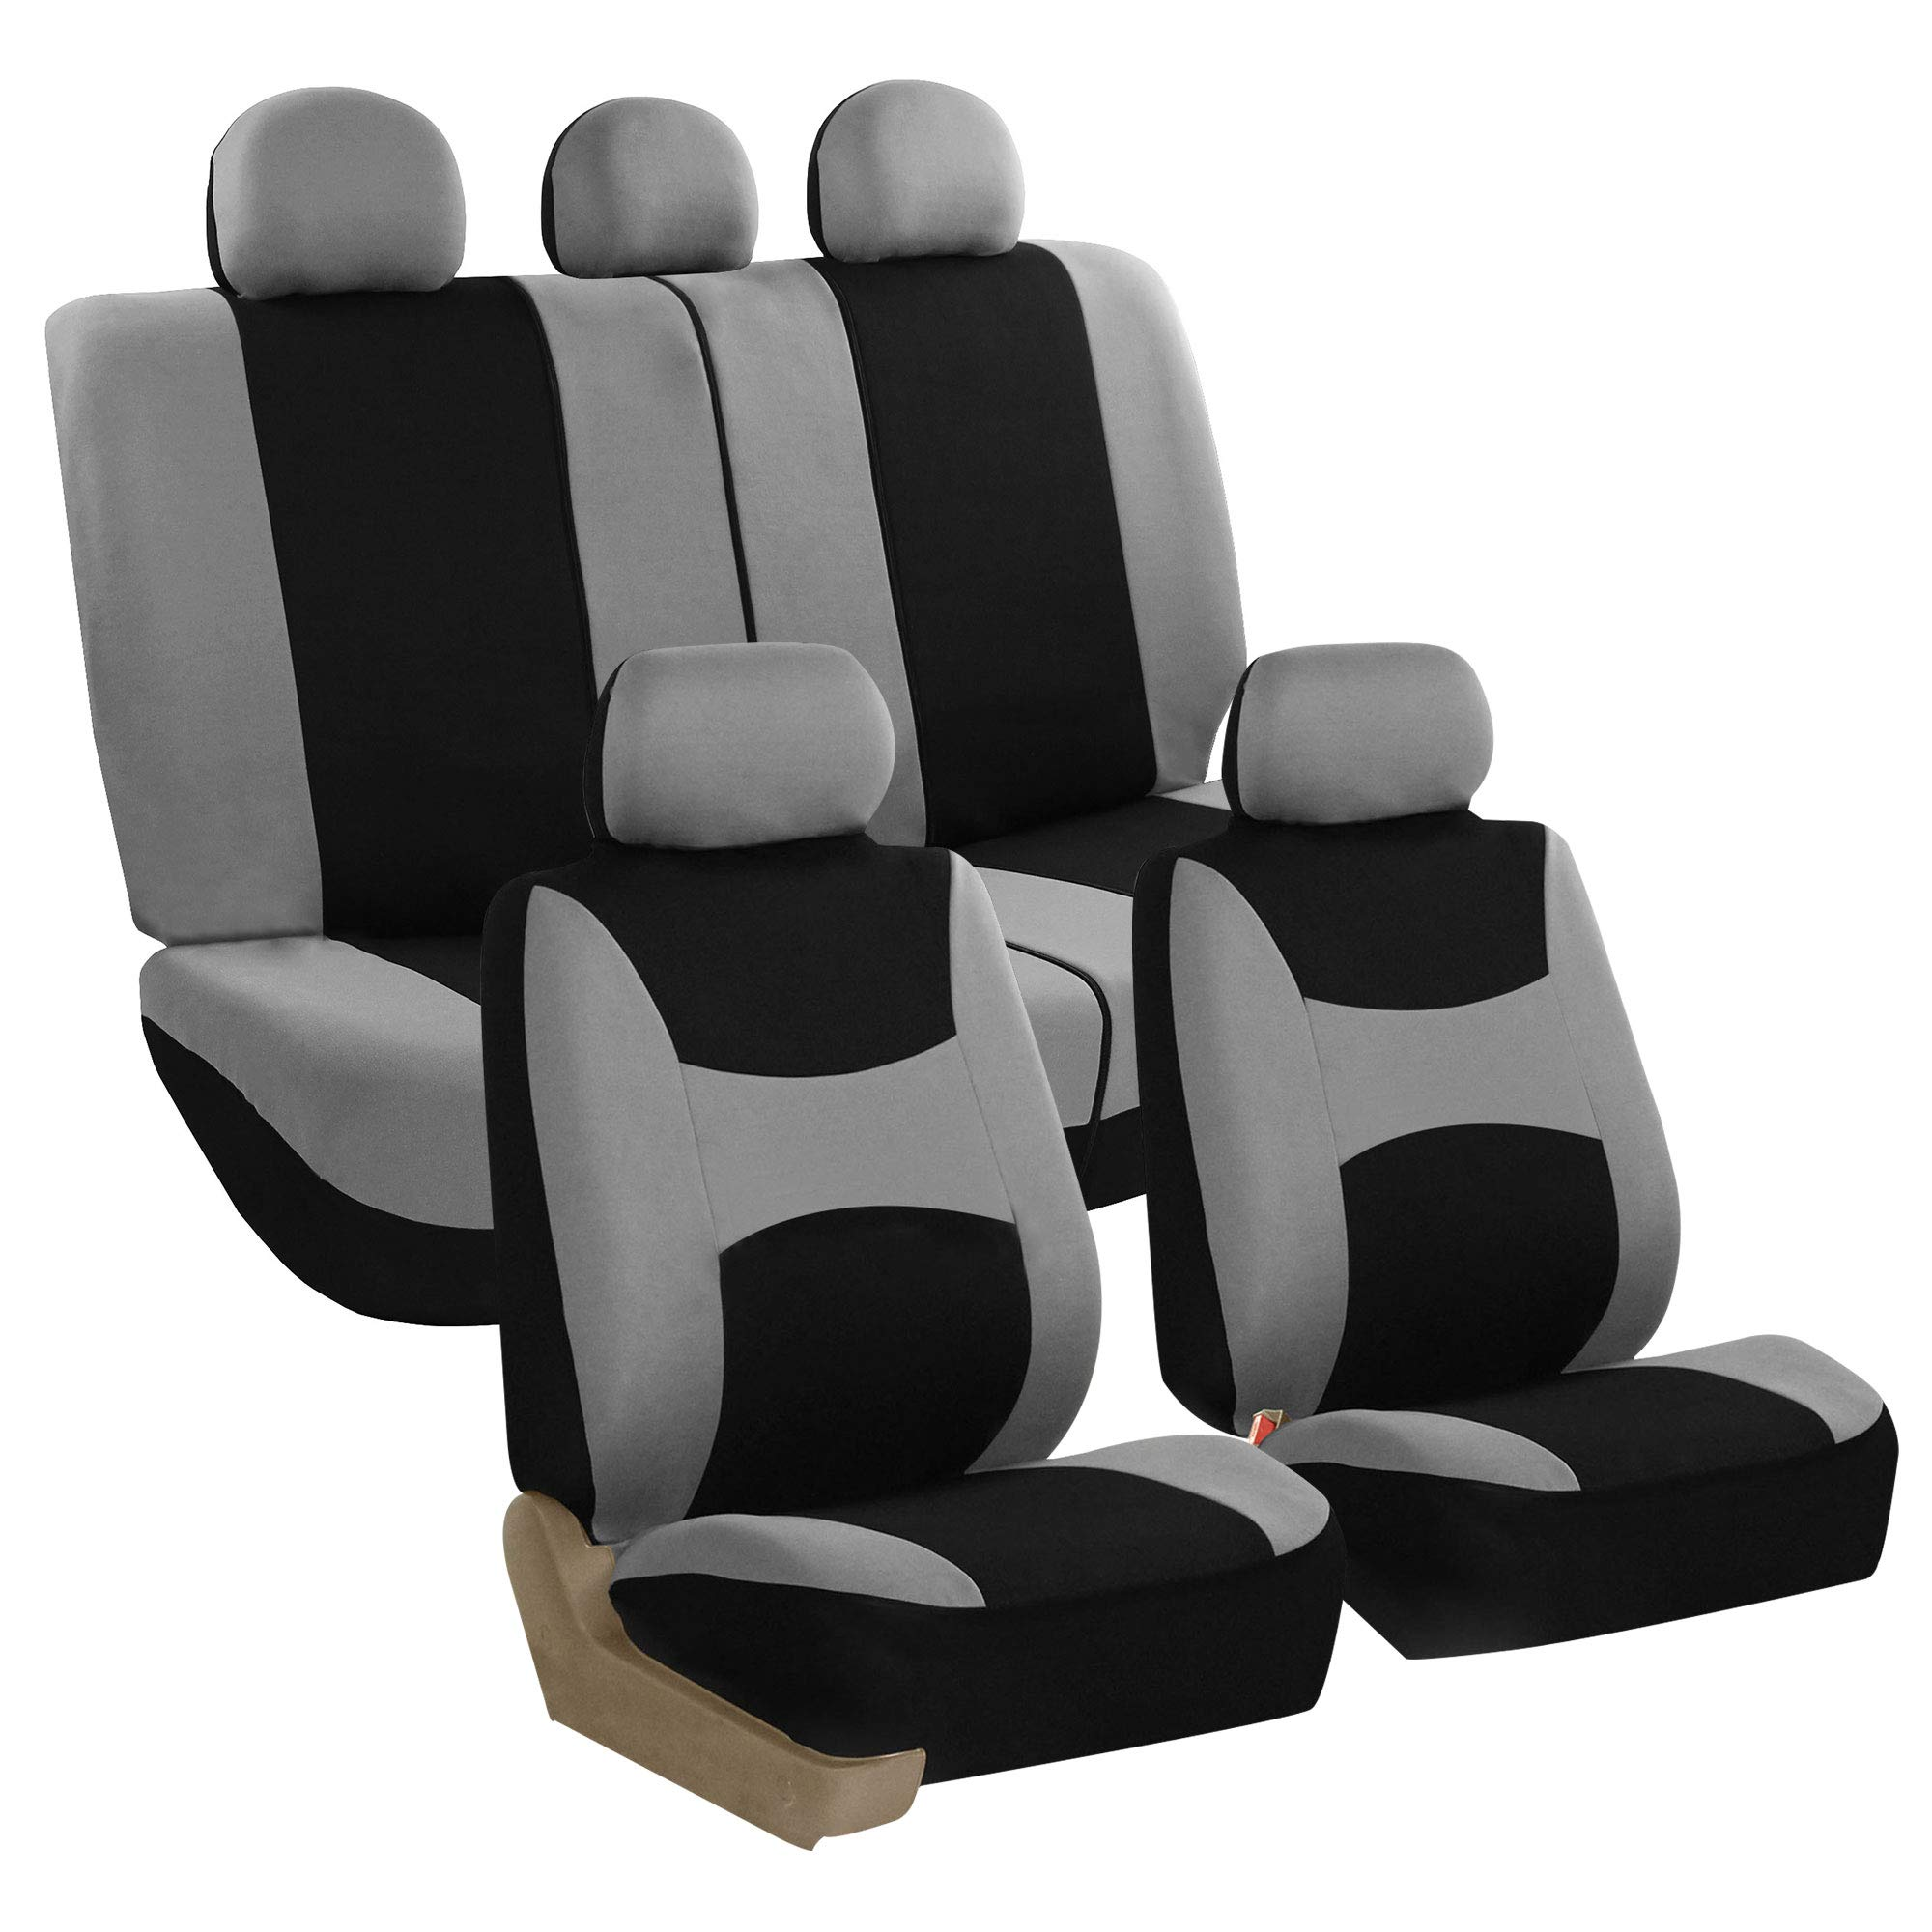 FH Group Light & Breezy Cloth Seat Cover Set Airbag & Split Ready, Gray/Black- Fit Most Car, Truck, SUV, or Van by FH Group